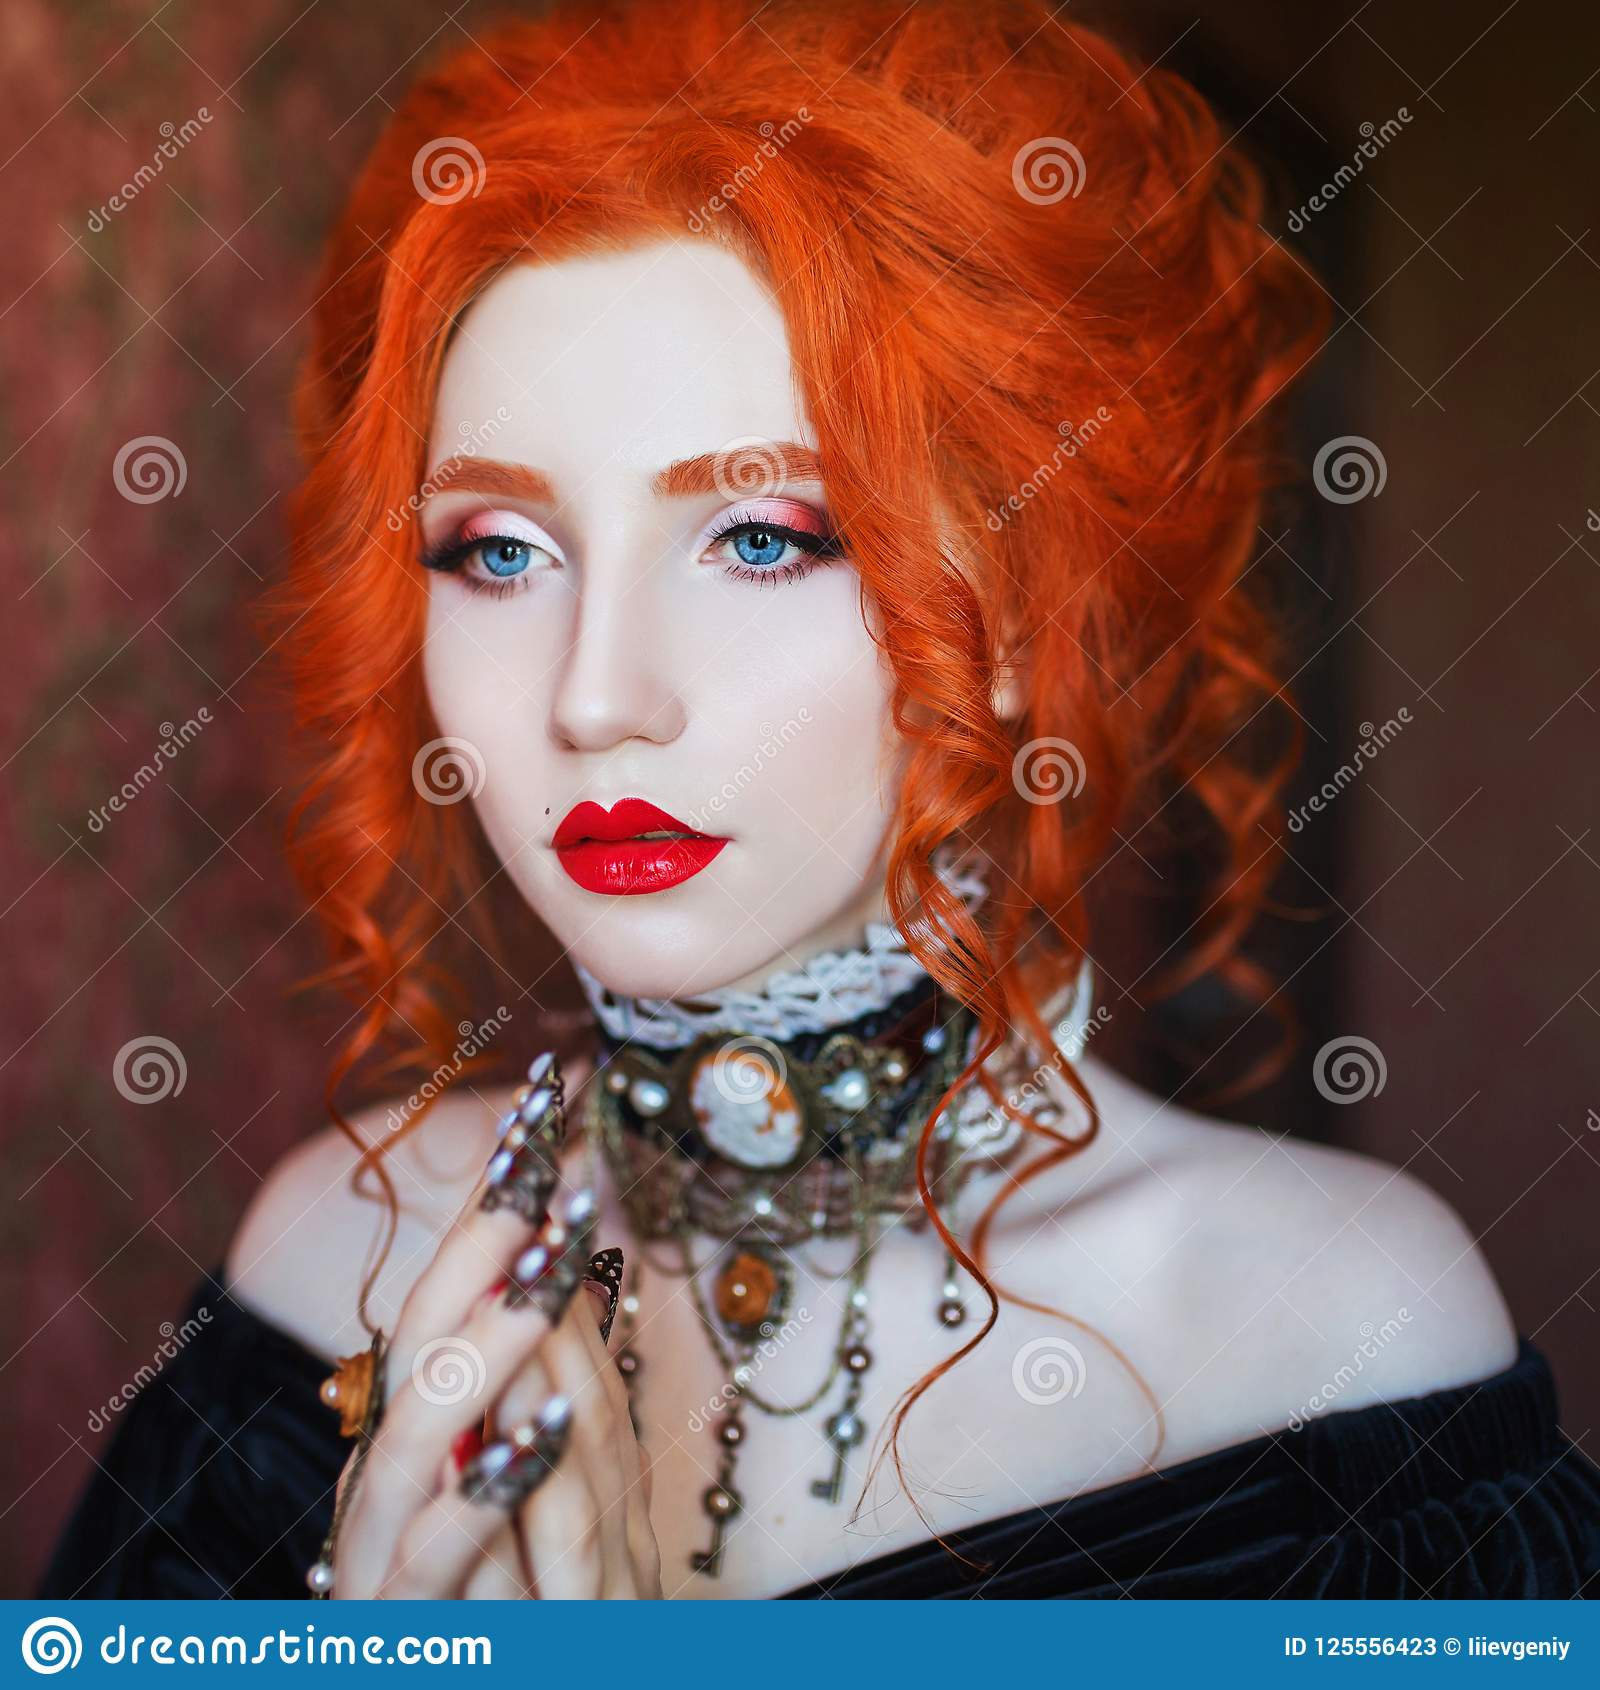 Sharp claws. Gothic halloween attire. Unusual woman pray with pale skin and red hair in black dress and necklace on neck.